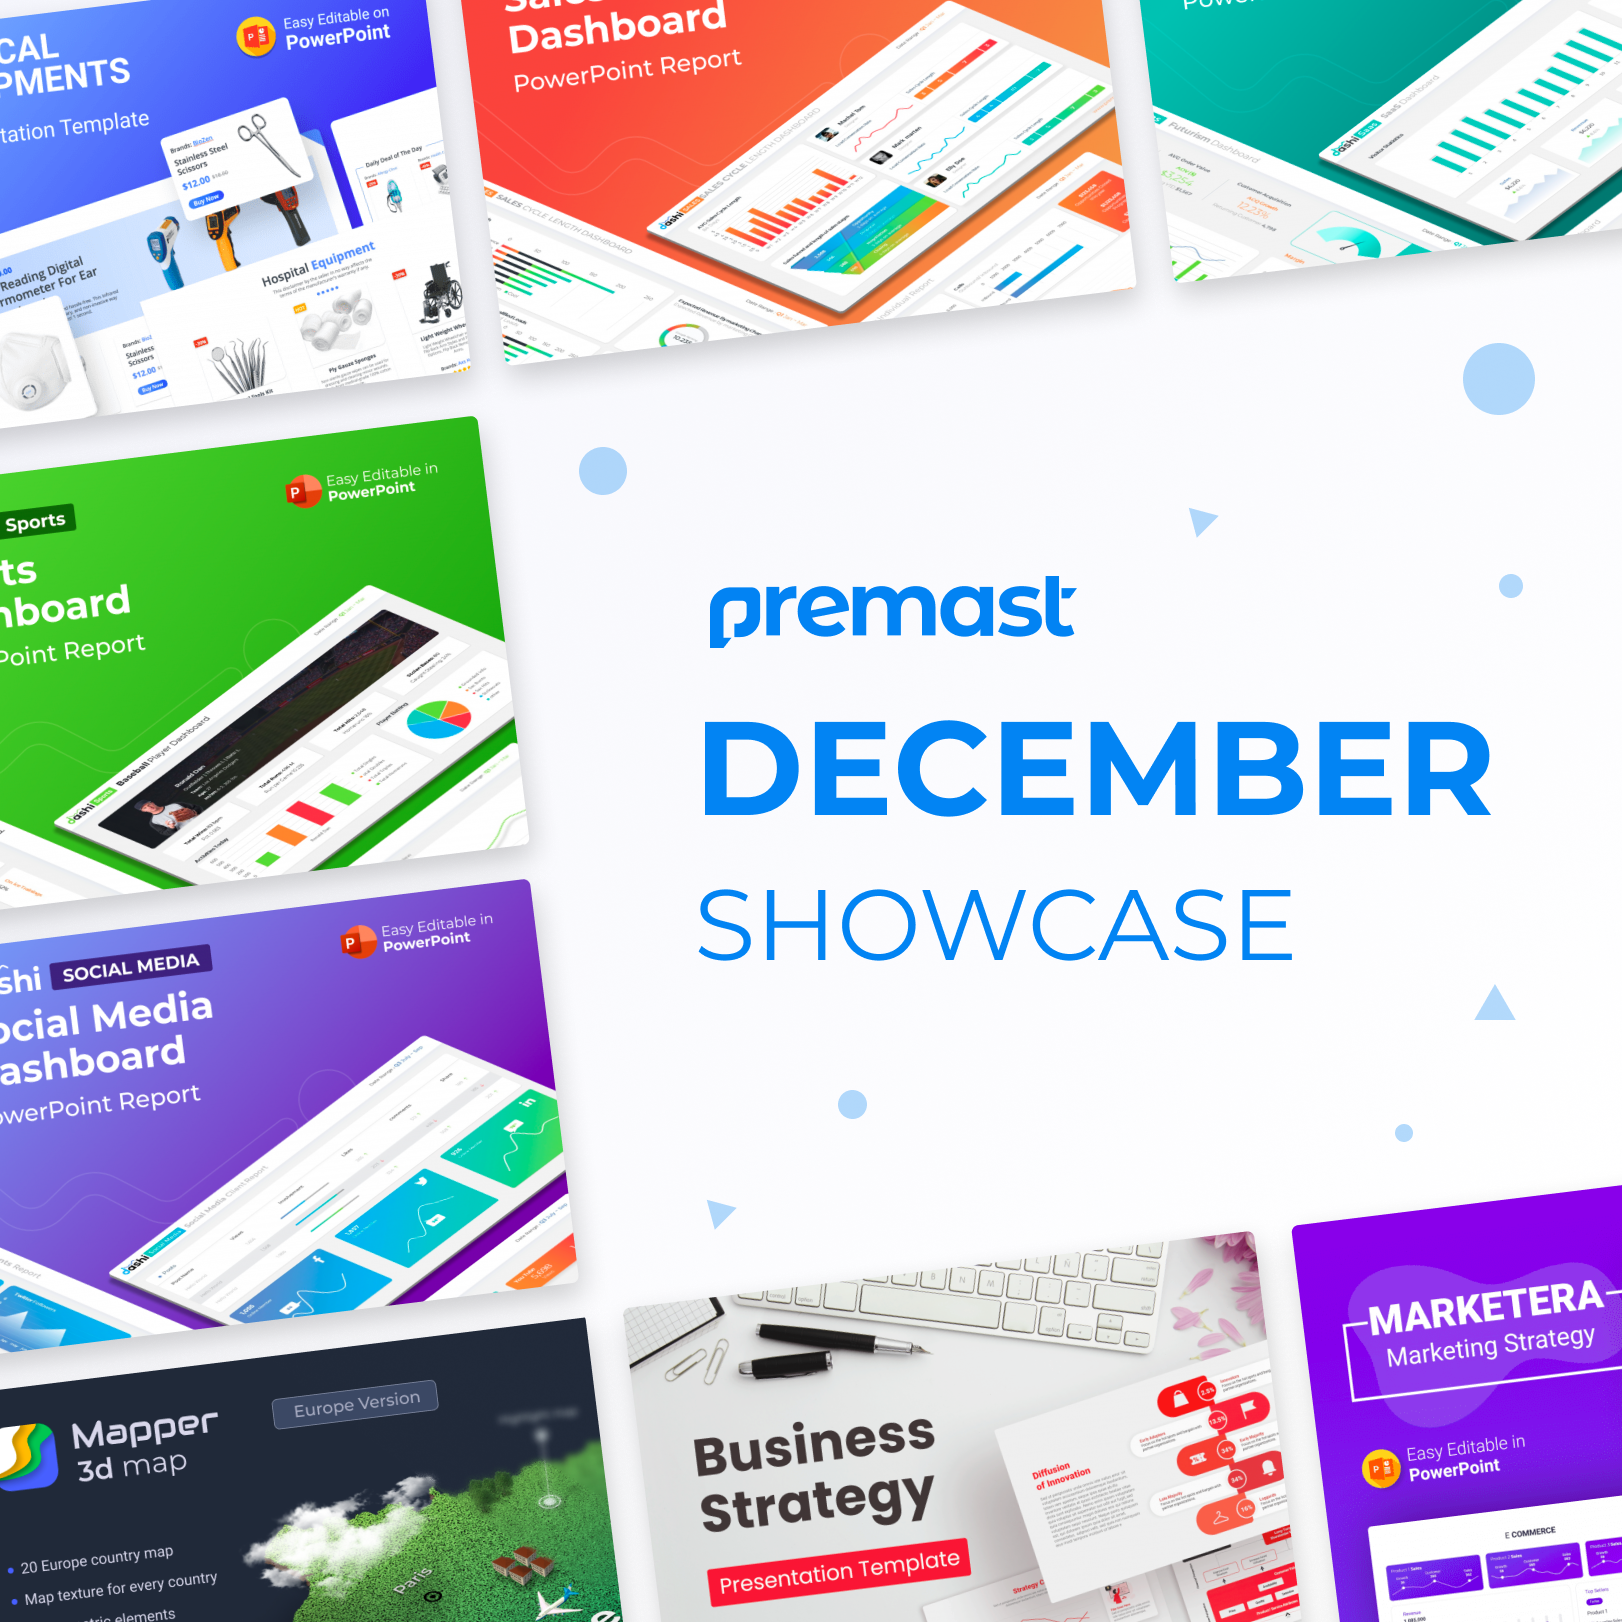 December Showcase: Recently Added, Top Downloaded PowerPoint Template& more!